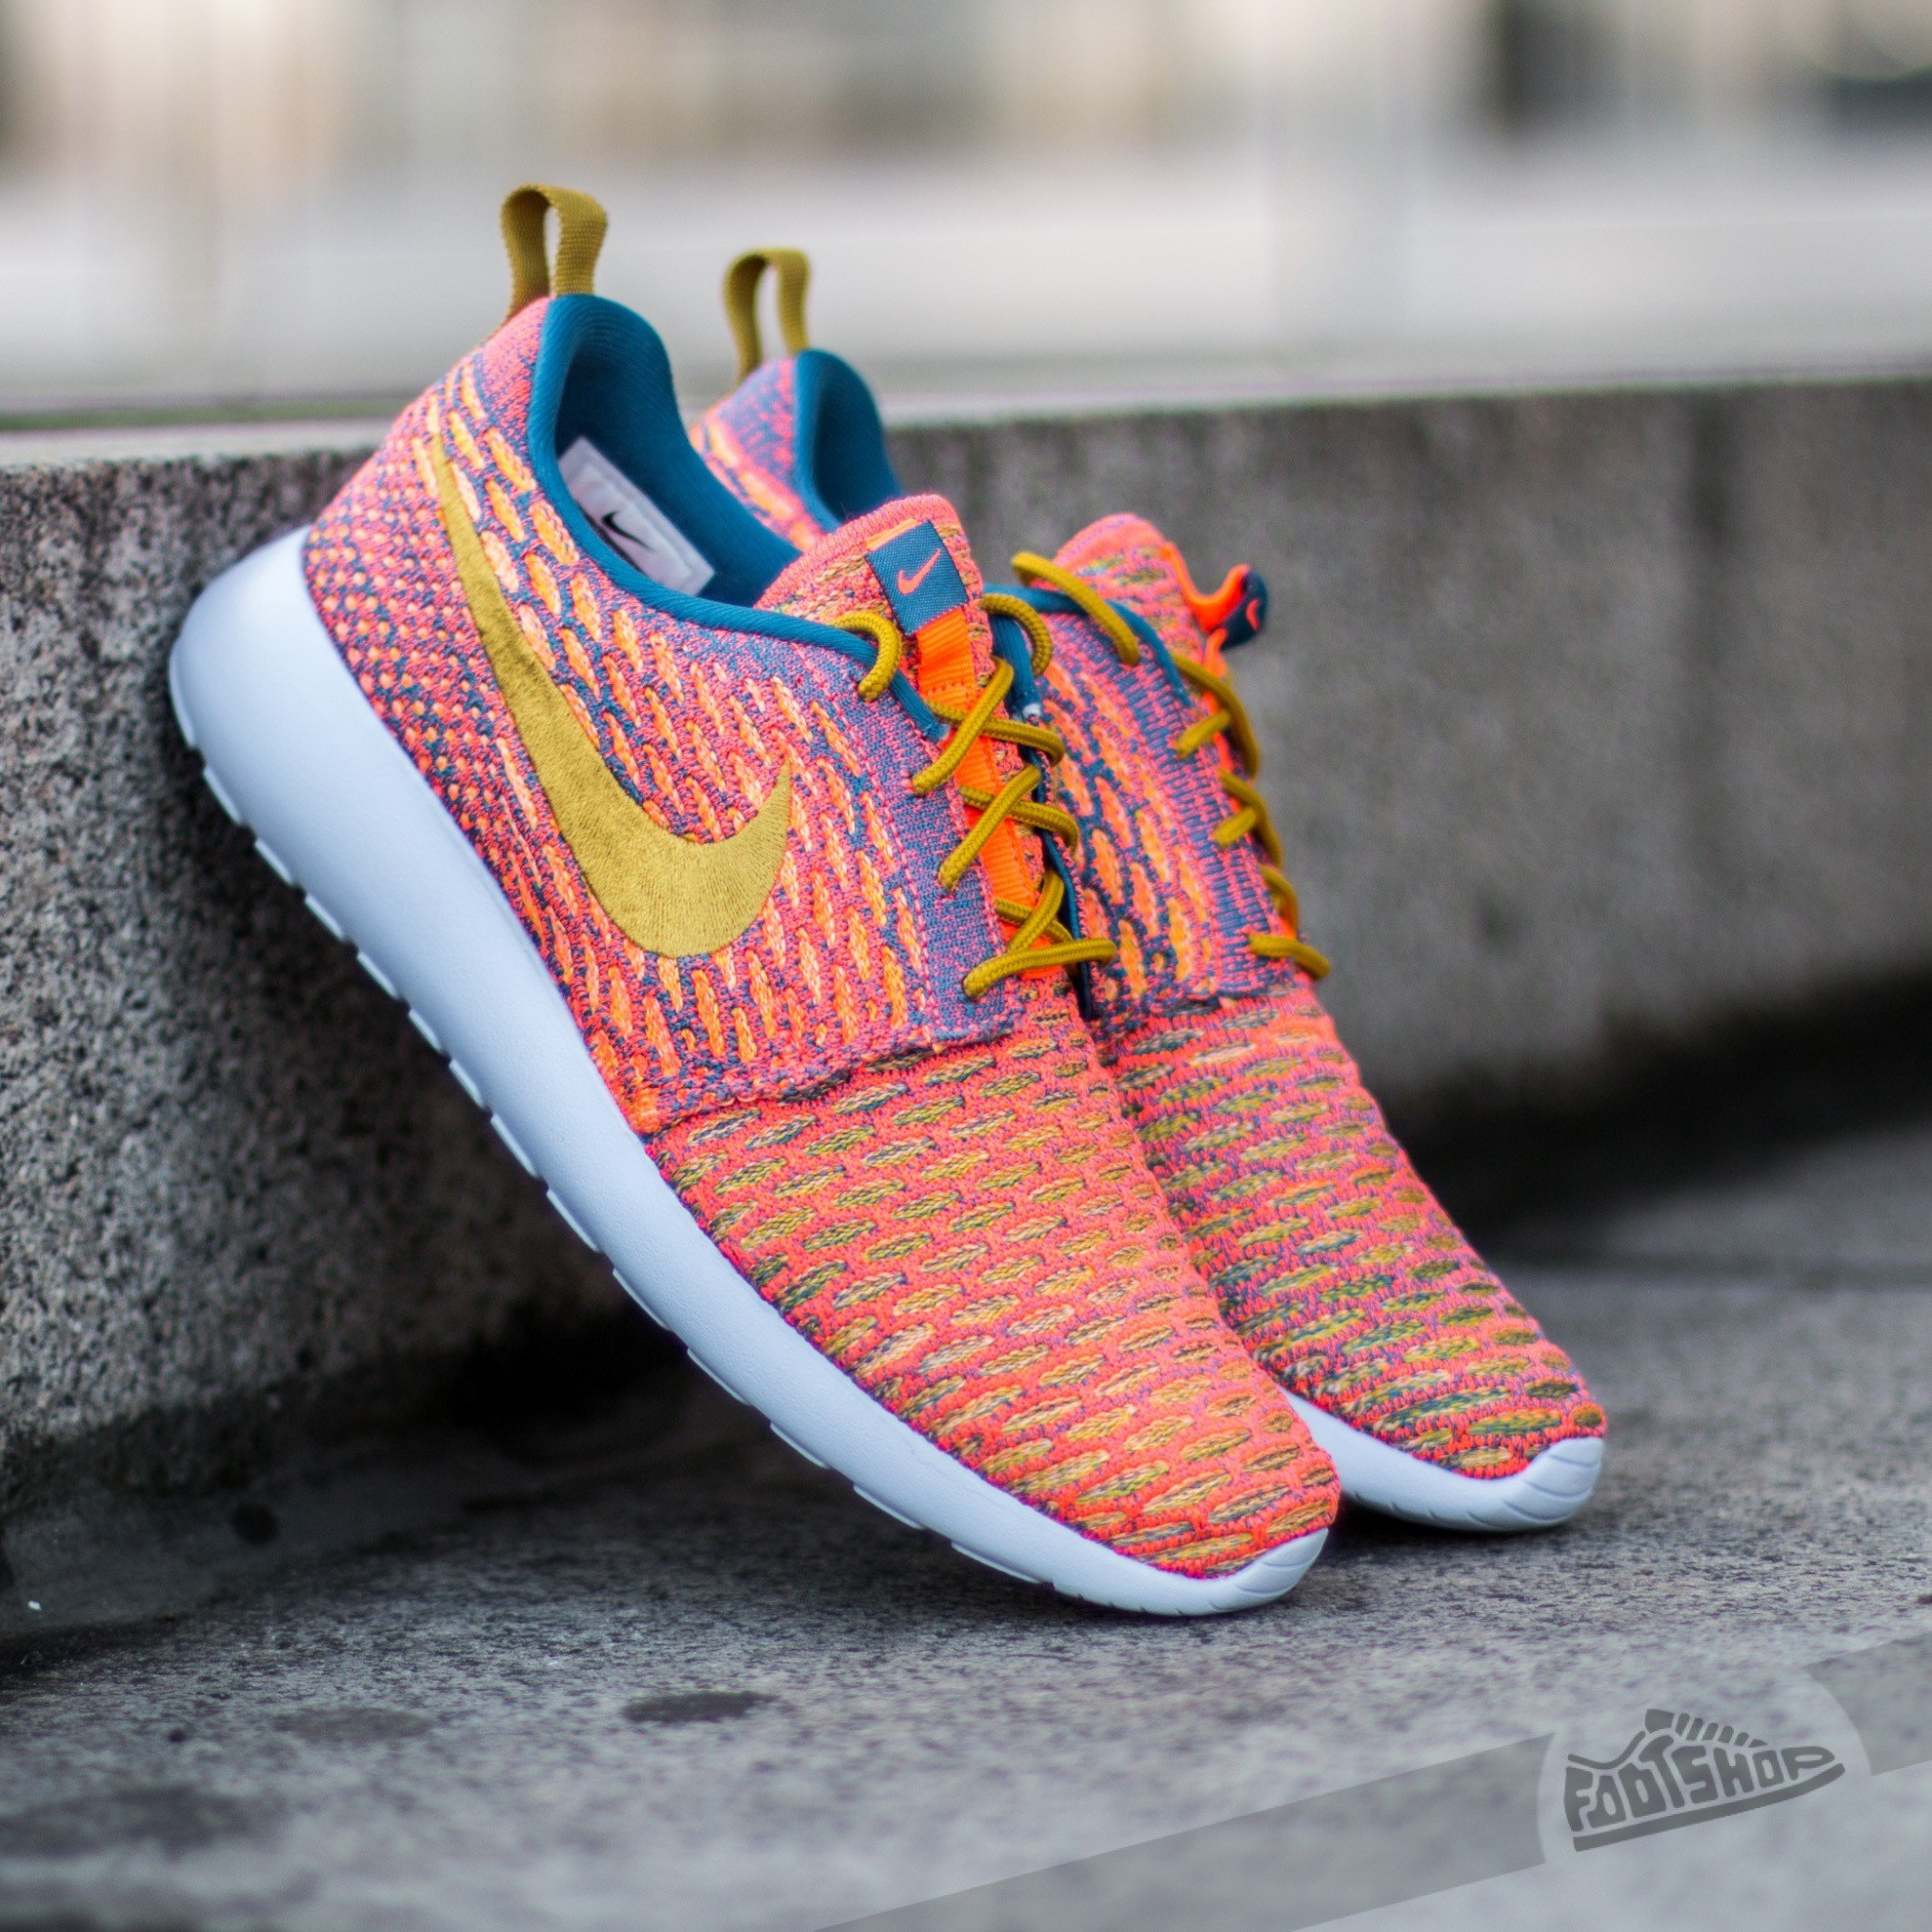 the best attitude 3a140 e34f2 Nike Wmns Roshe One Flyknit Brgd Blue  Dark Citron- Sunset Glow- Hyper